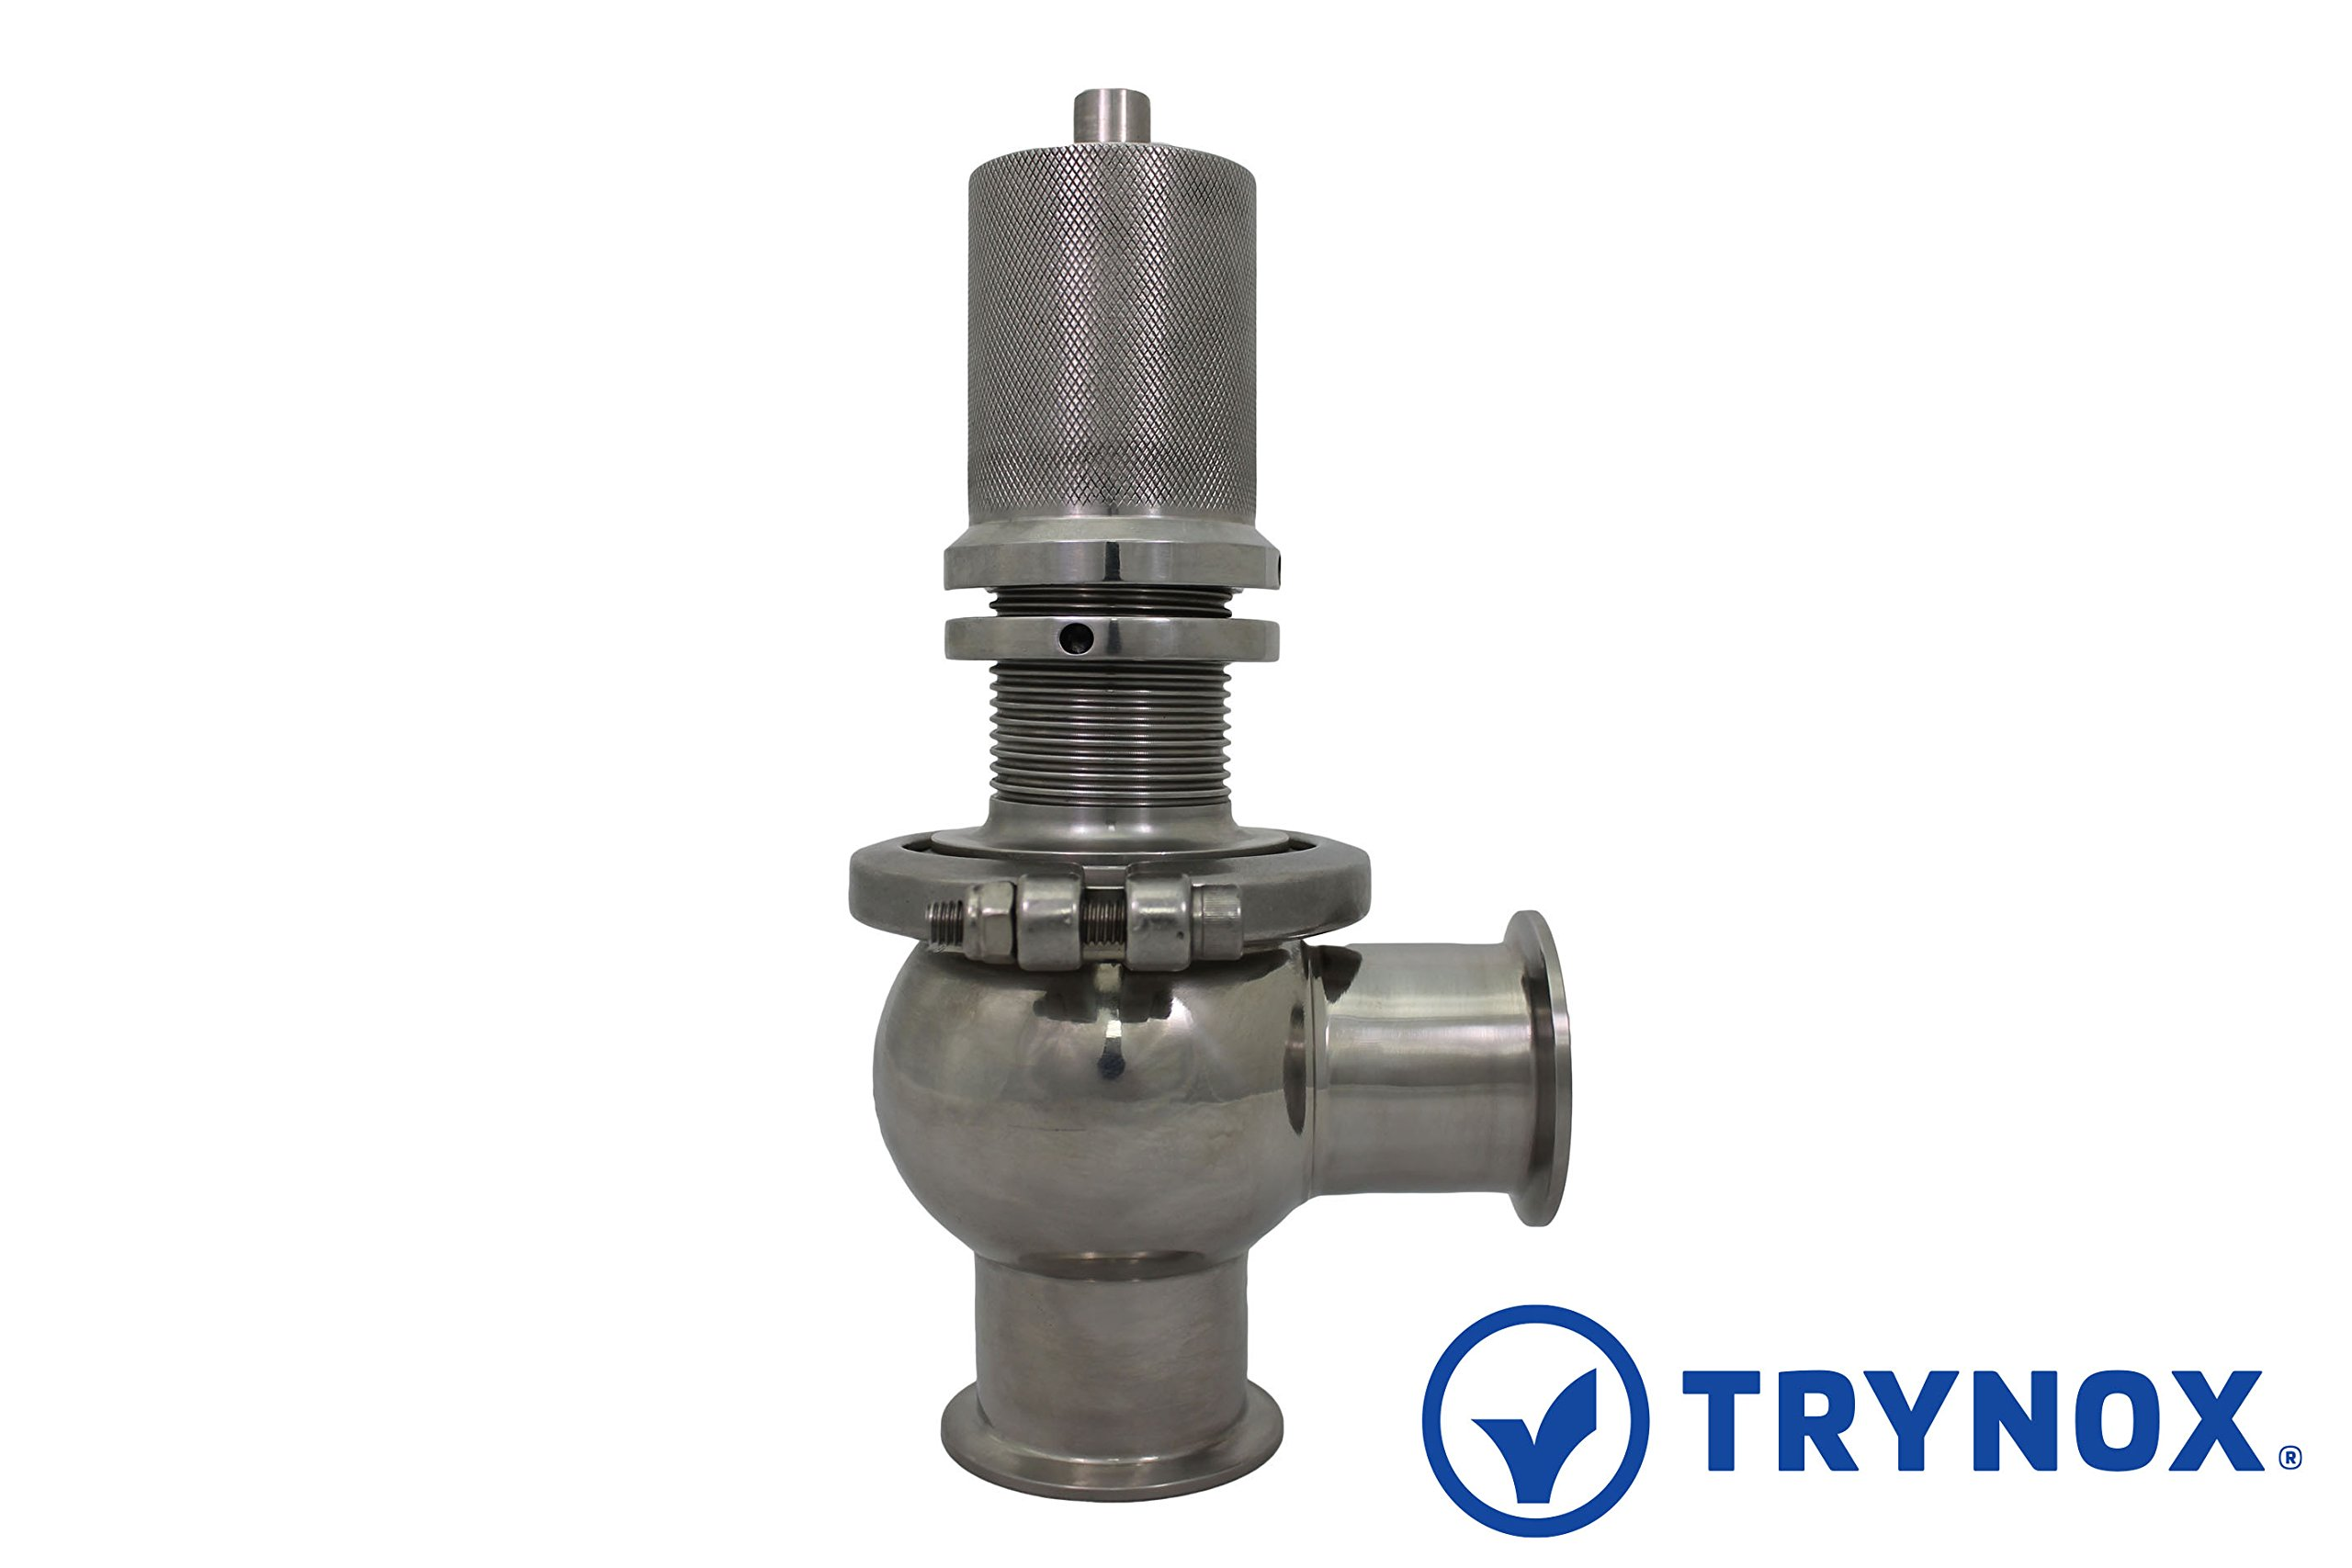 Trynox Clamp Sanitary Stainless Steel Relief Valve 316L 2'' Sanitary Fitting